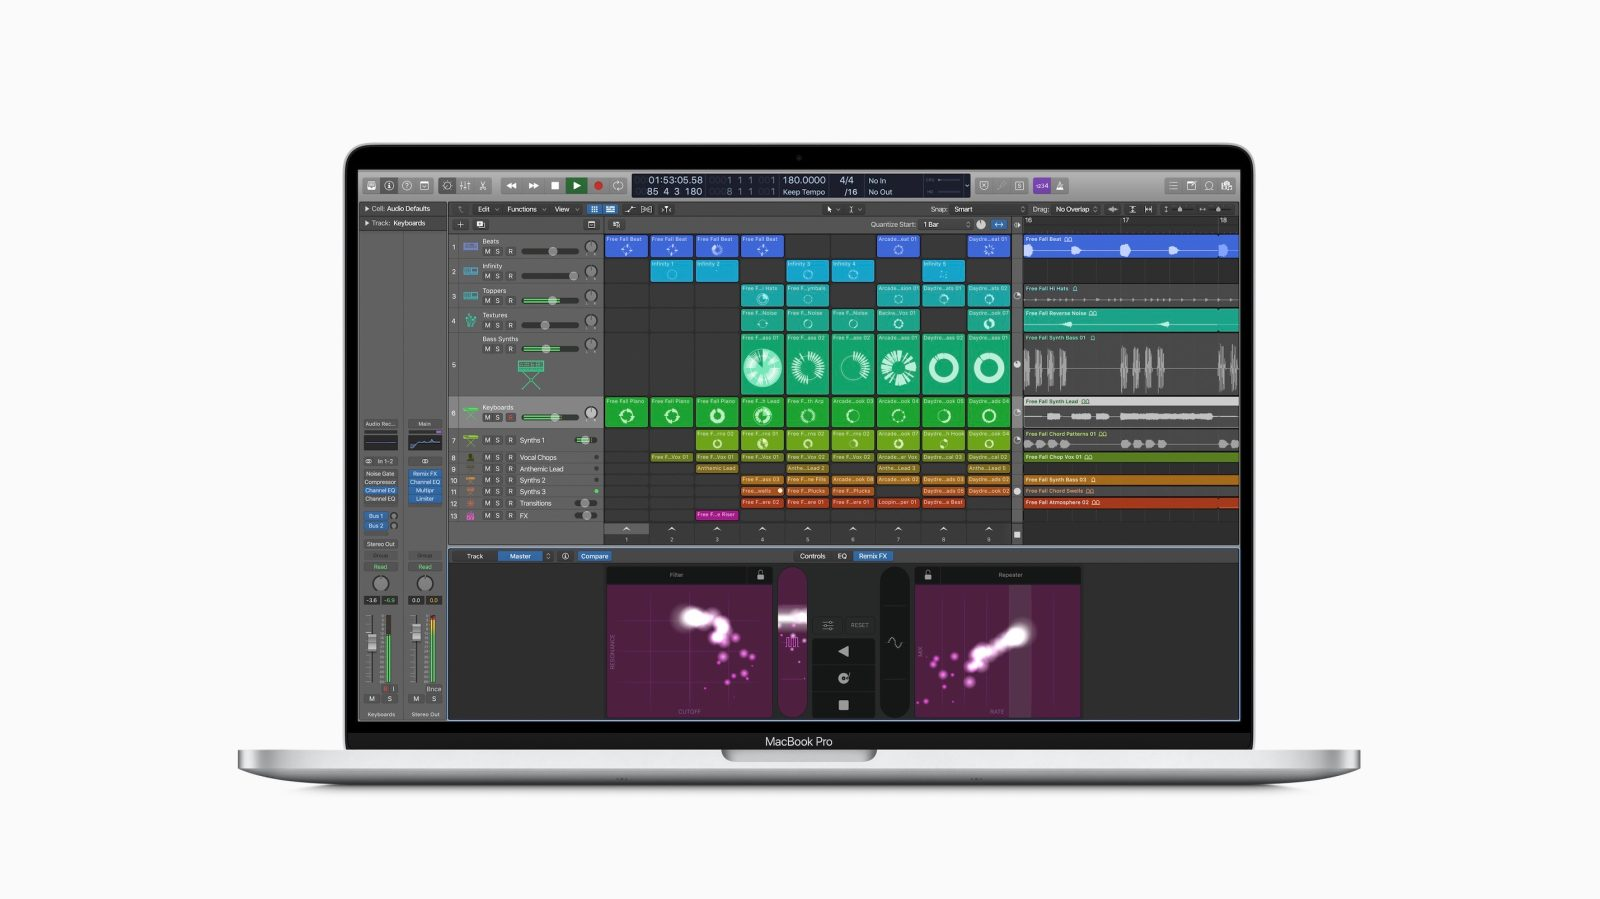 Unreleased version of Logic Pro X surfaces on Apple's website with Live Loops feature